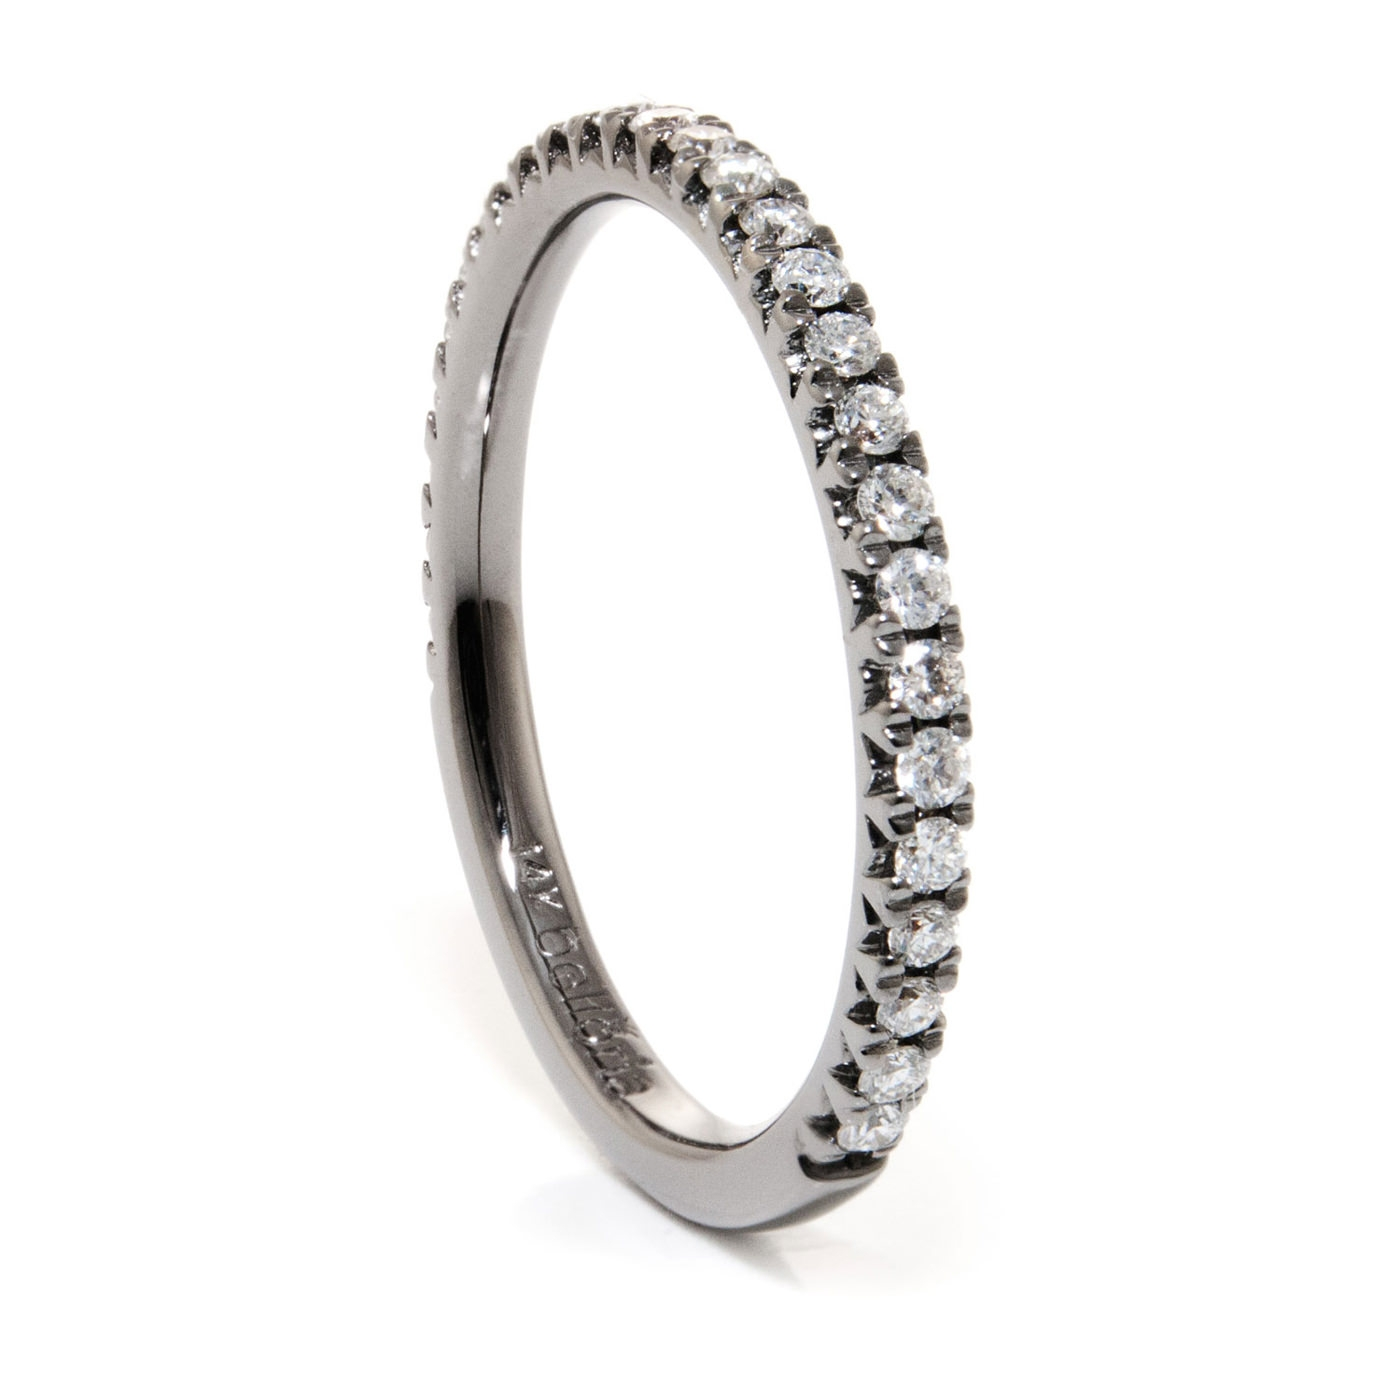 Black Rhodium Gold & Diamond Wedding Ring – Belloria – Eternity Bands Intended For Most Recently Released Rhodium Wedding Bands (View 3 of 15)